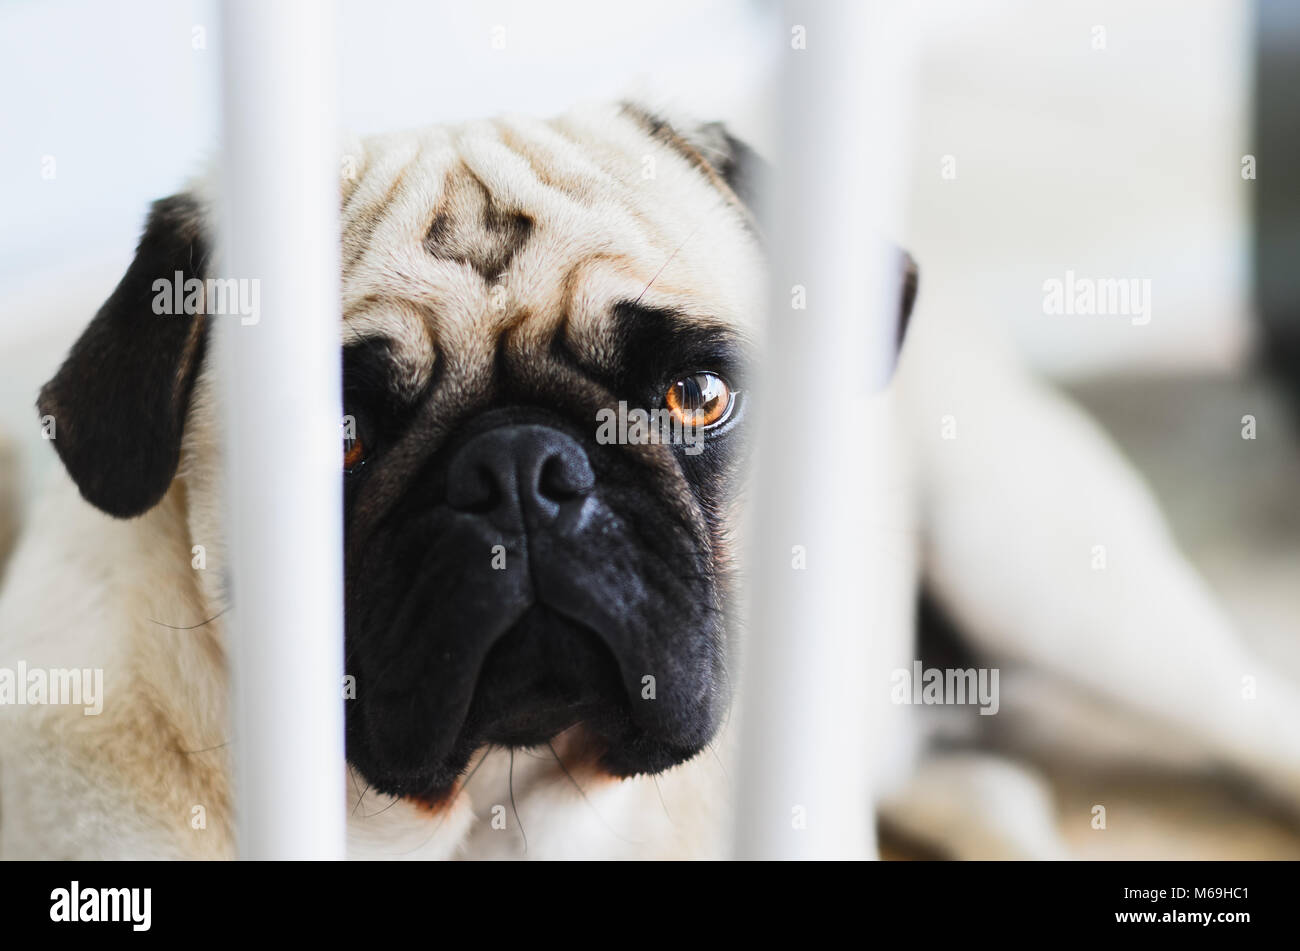 Guilty dog, Pug dog behind the bars of a protective bar for dogs. Dog with pity face, sad. - Stock Image